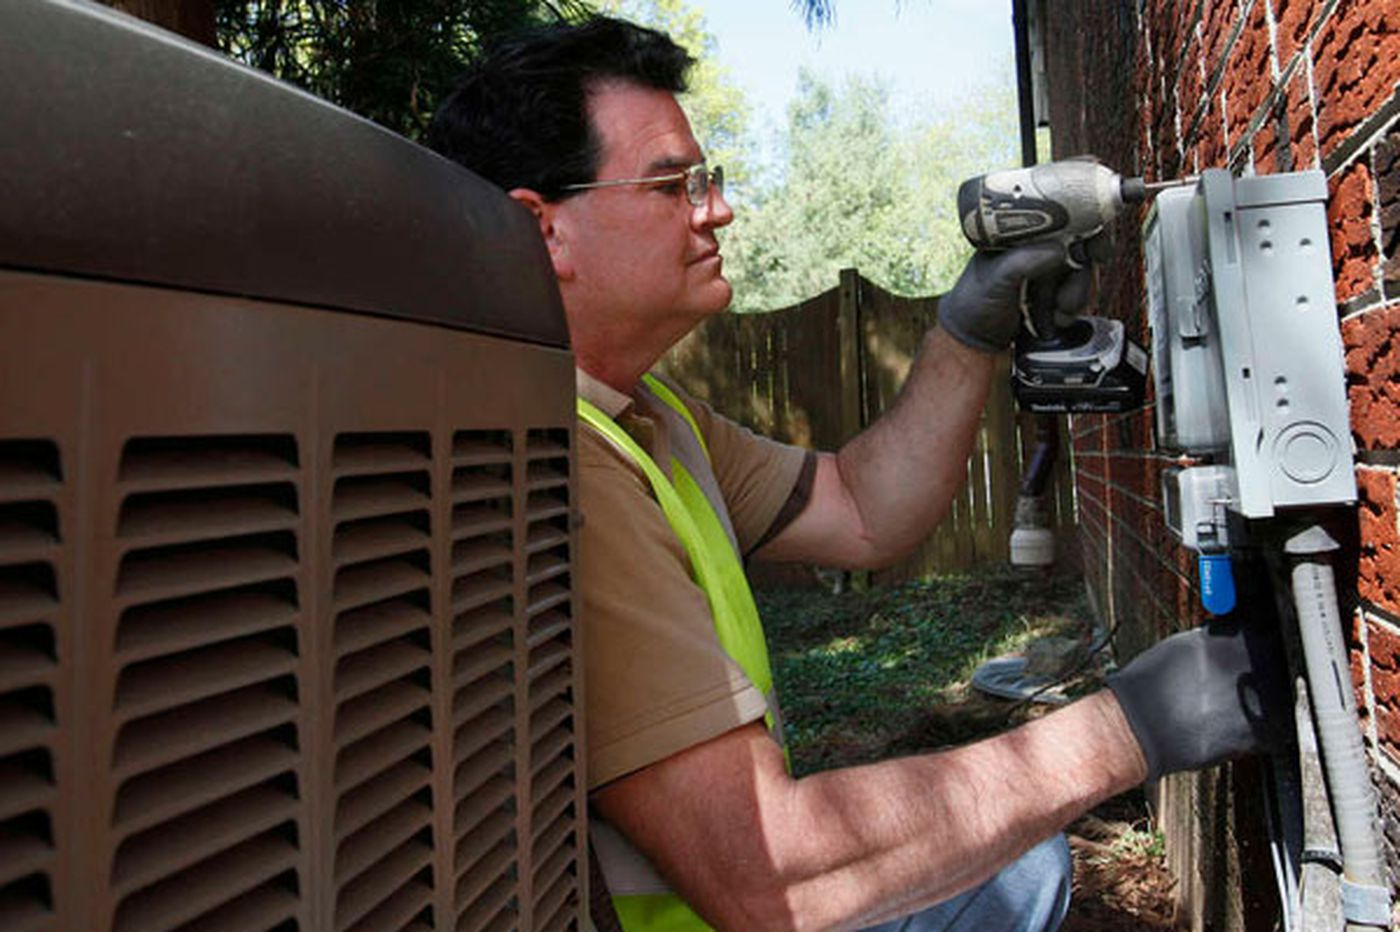 Peco relaunches its Smart A/C program